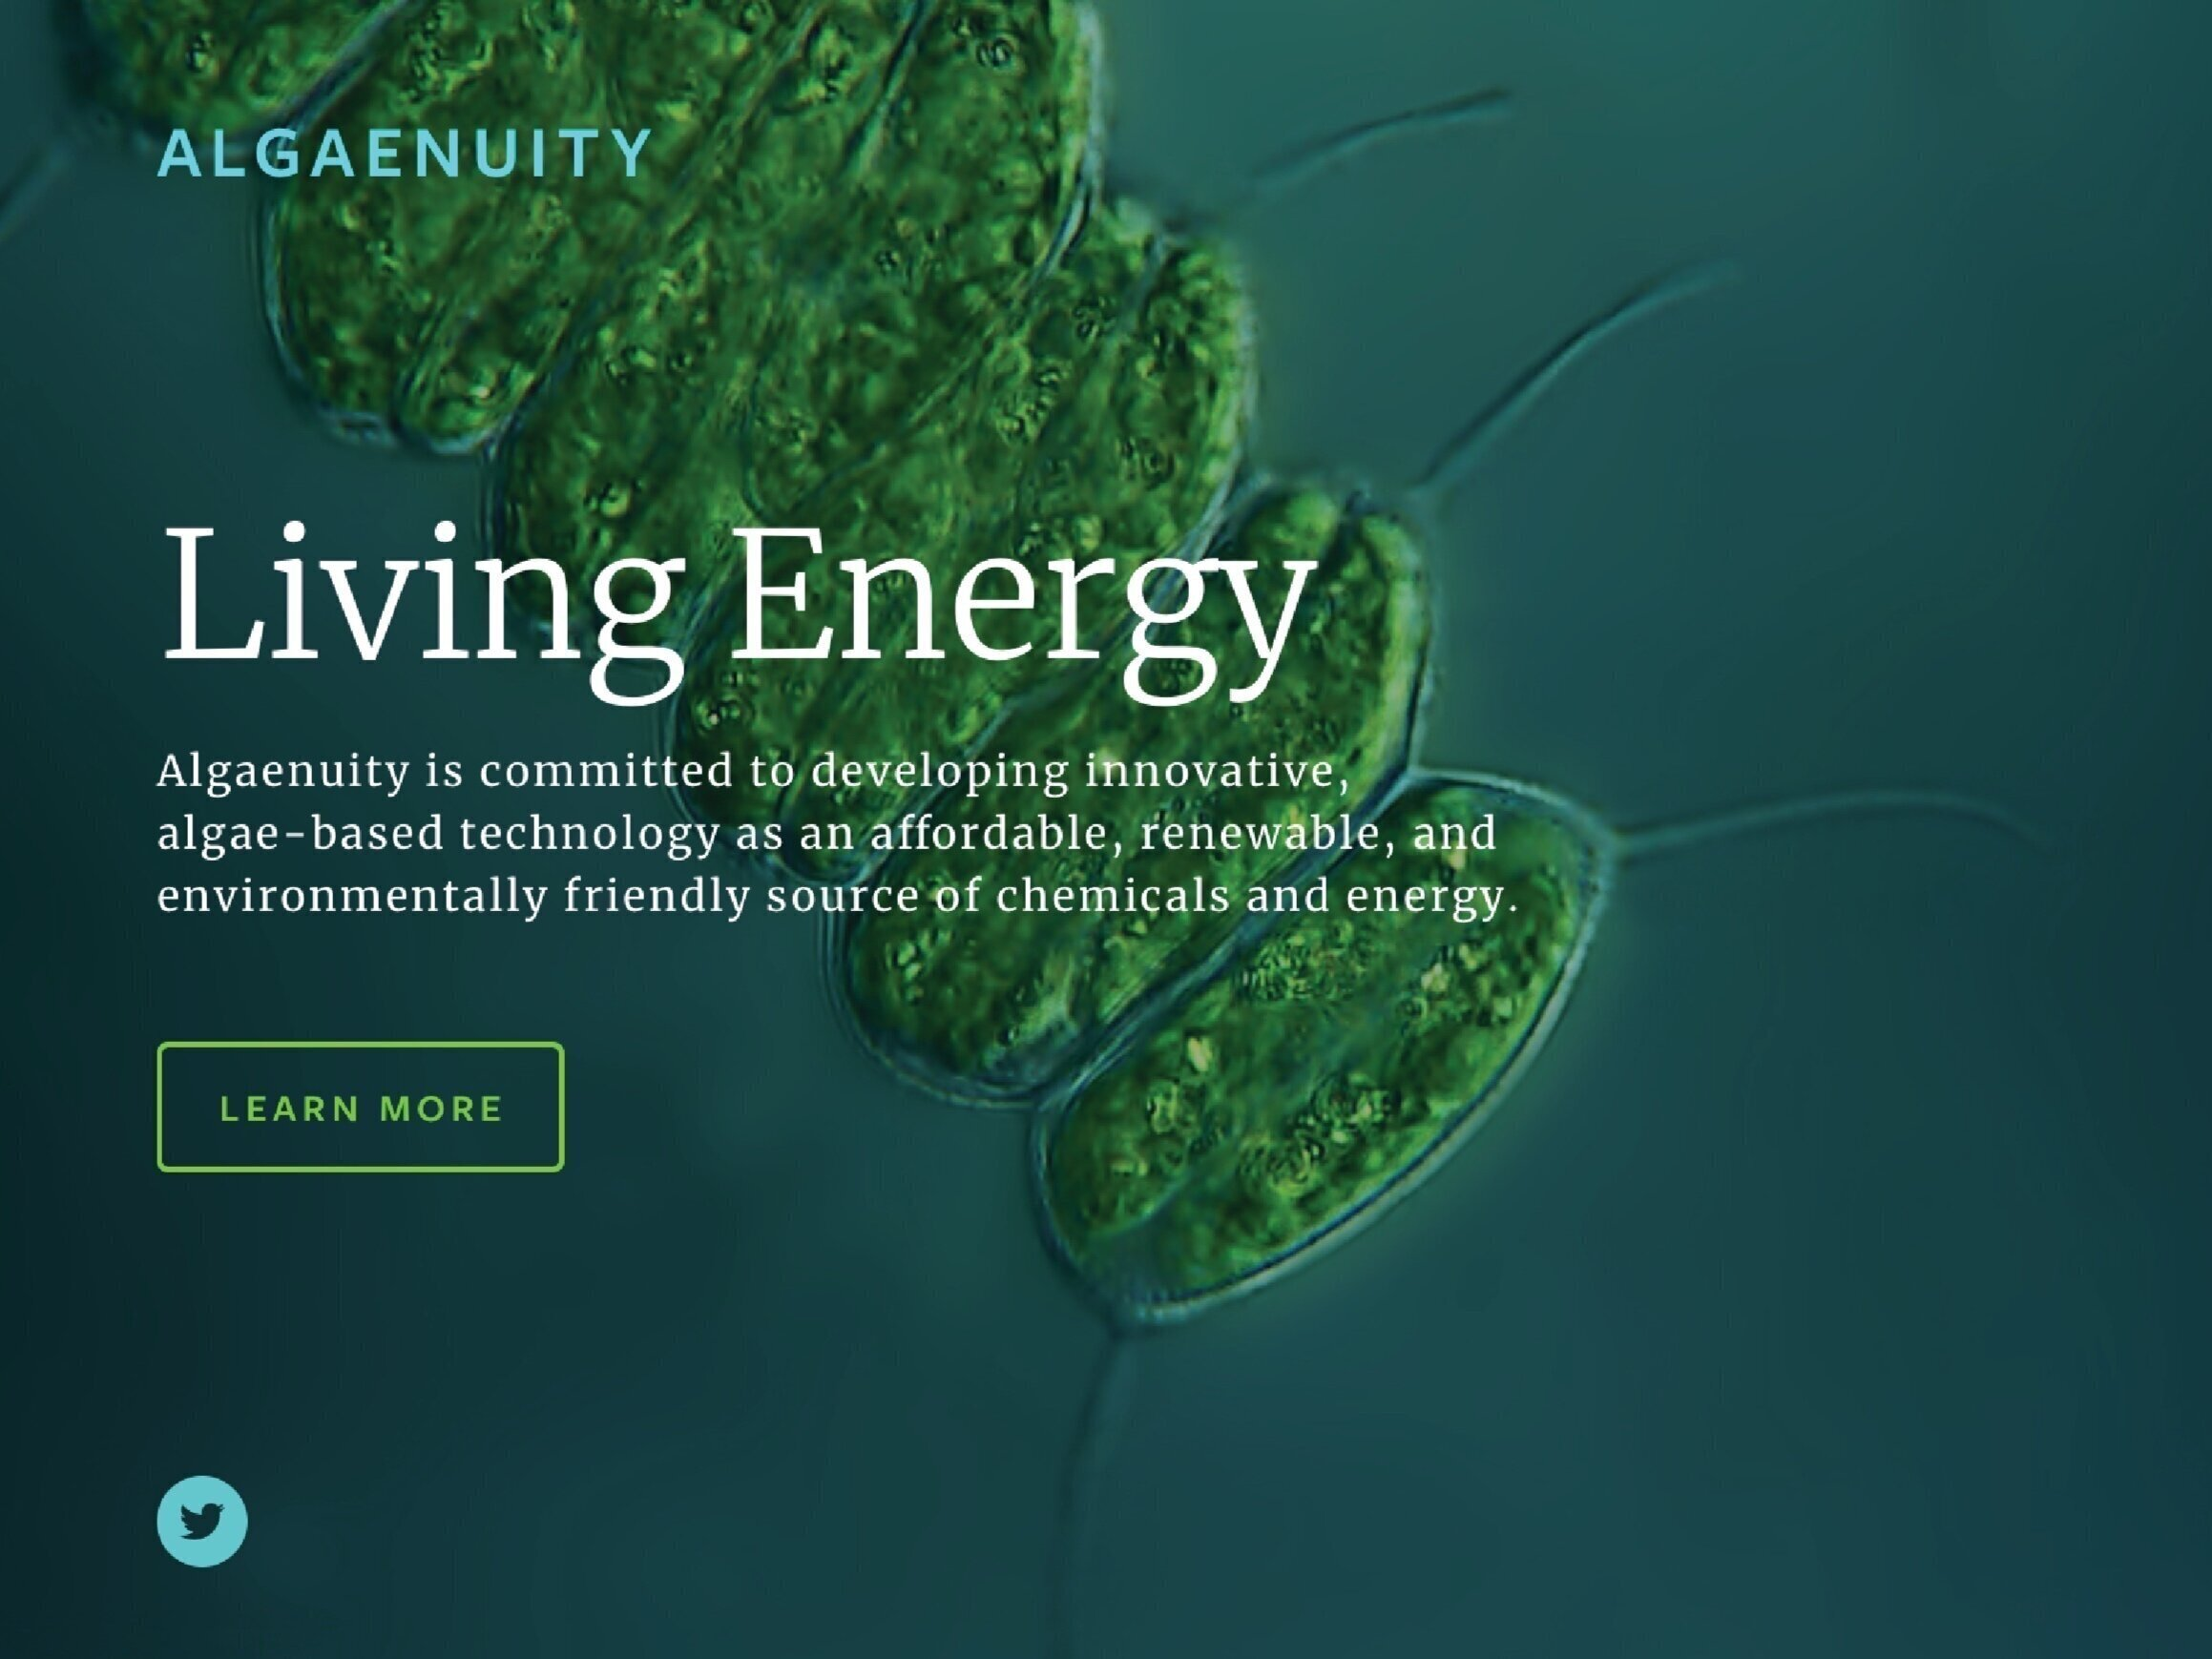 Algaenuity - Brand Identity and Website